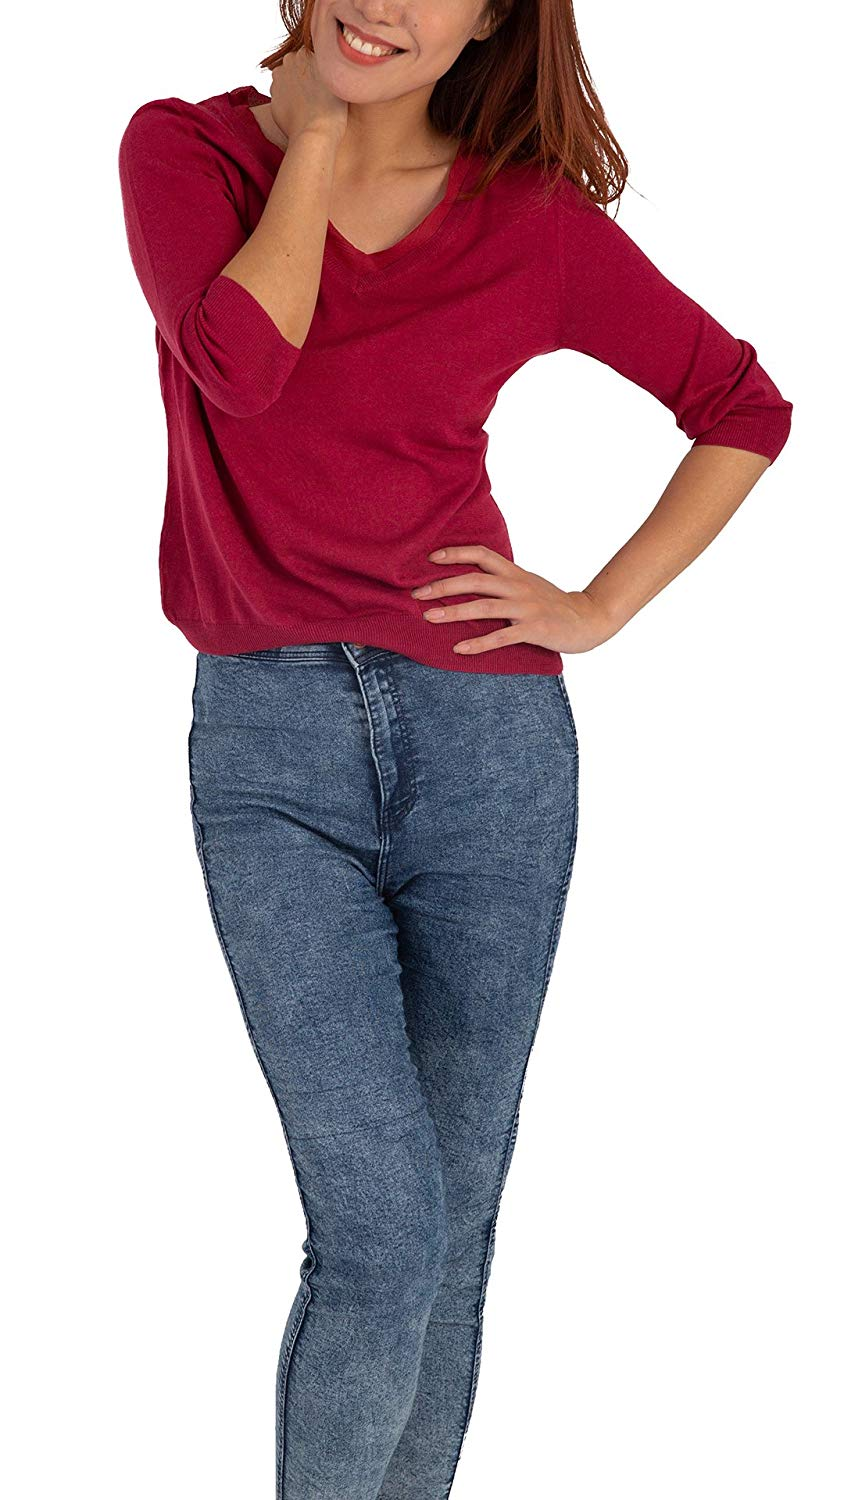 Silk Vneck Knitting Tops - 3/4 Sleeve is suitable for work and casual